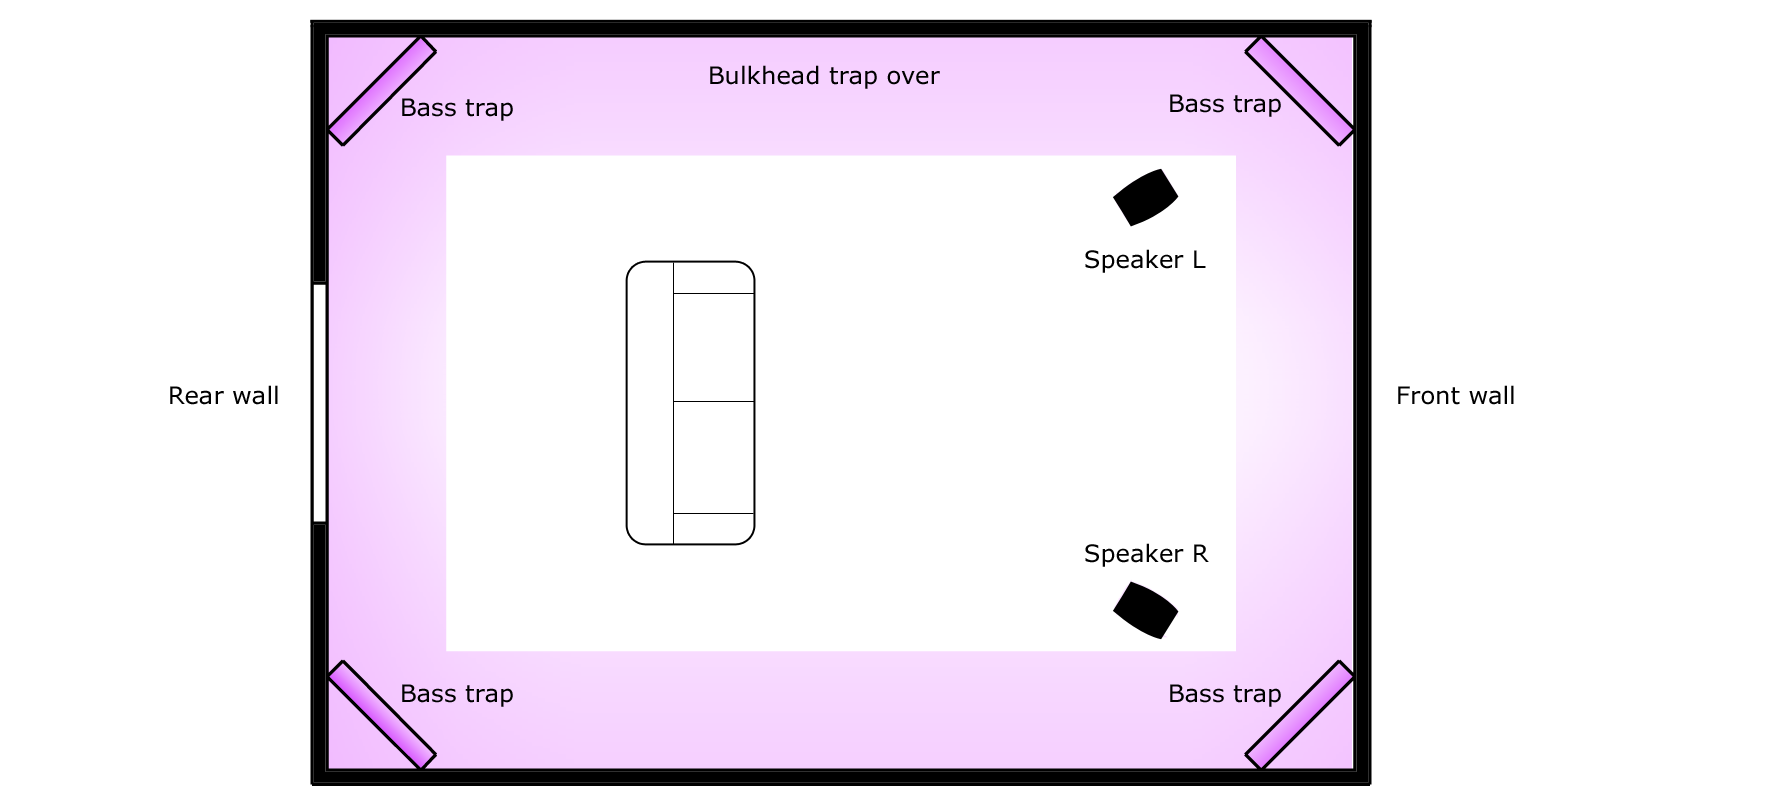 Figure 1.2 – Bass trap layout for a dedicated room